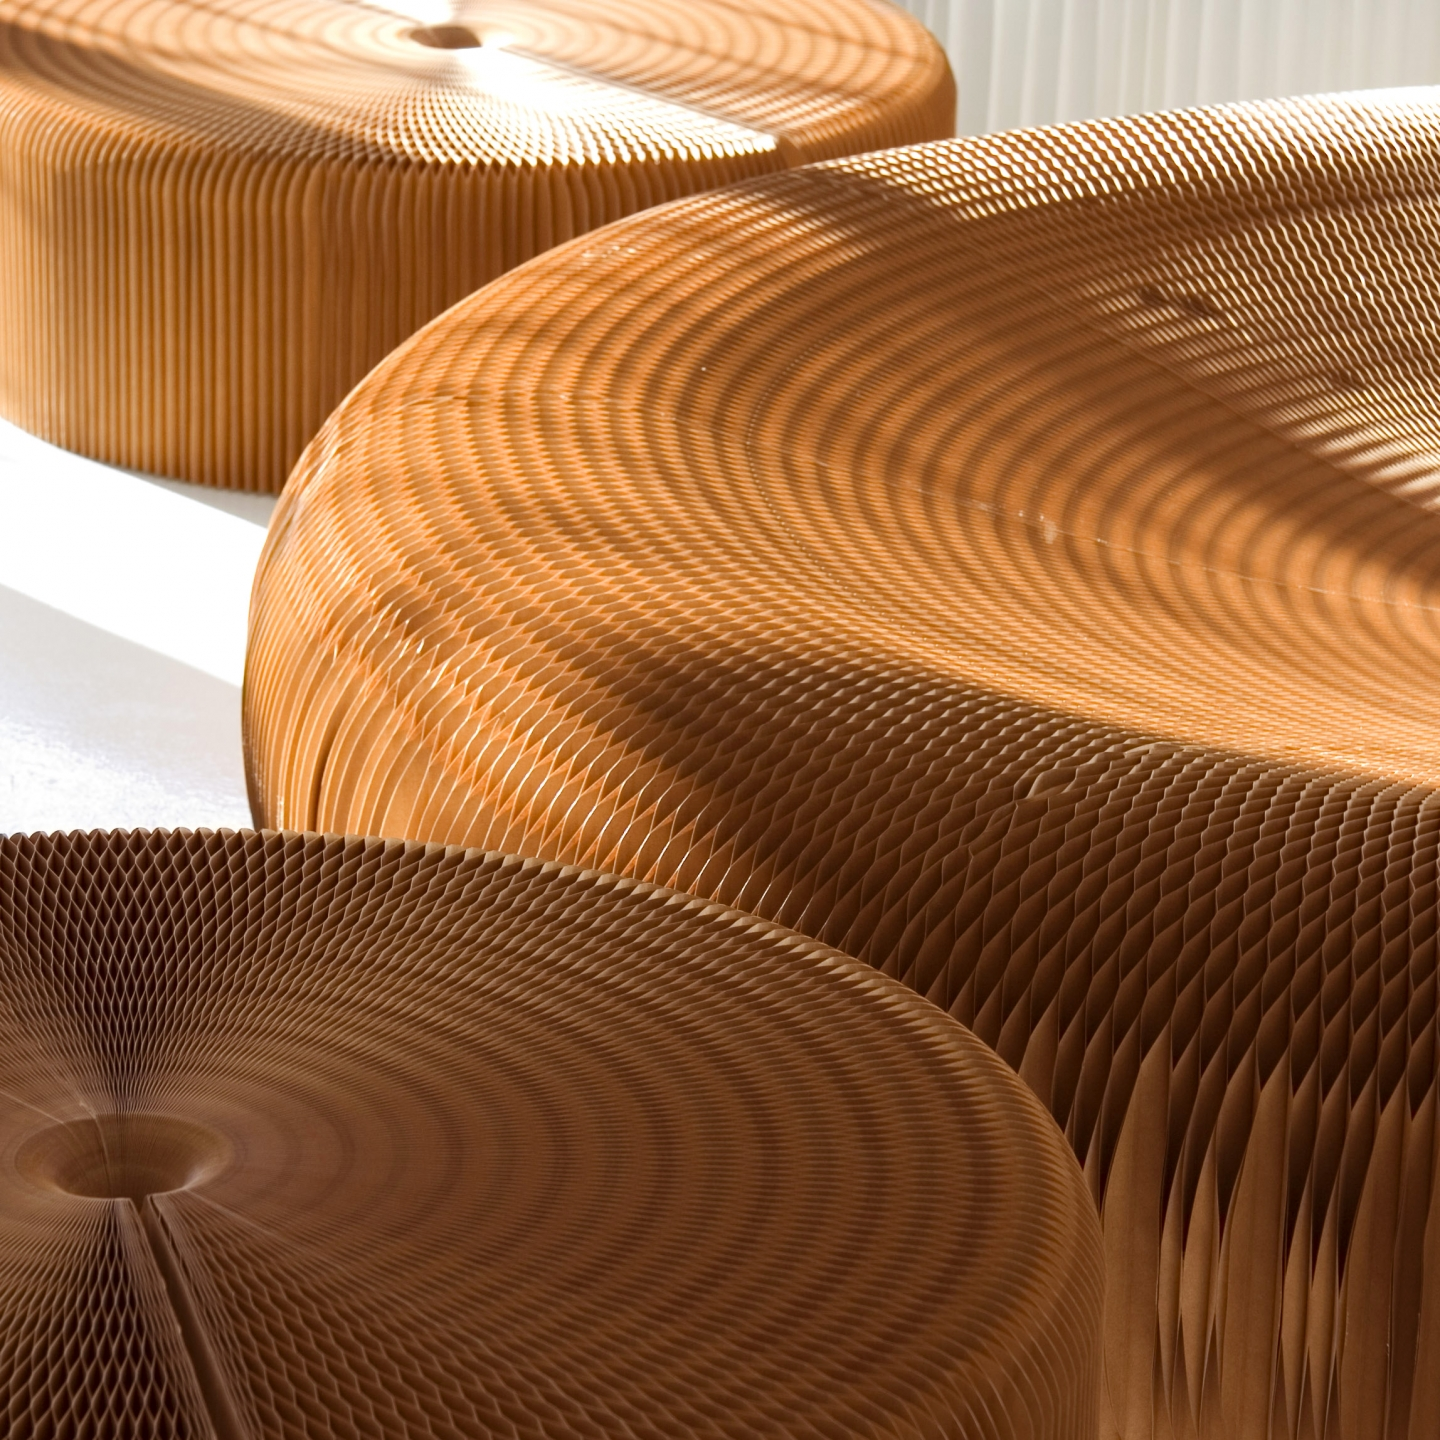 detail of paper softseating dappled by sunshine